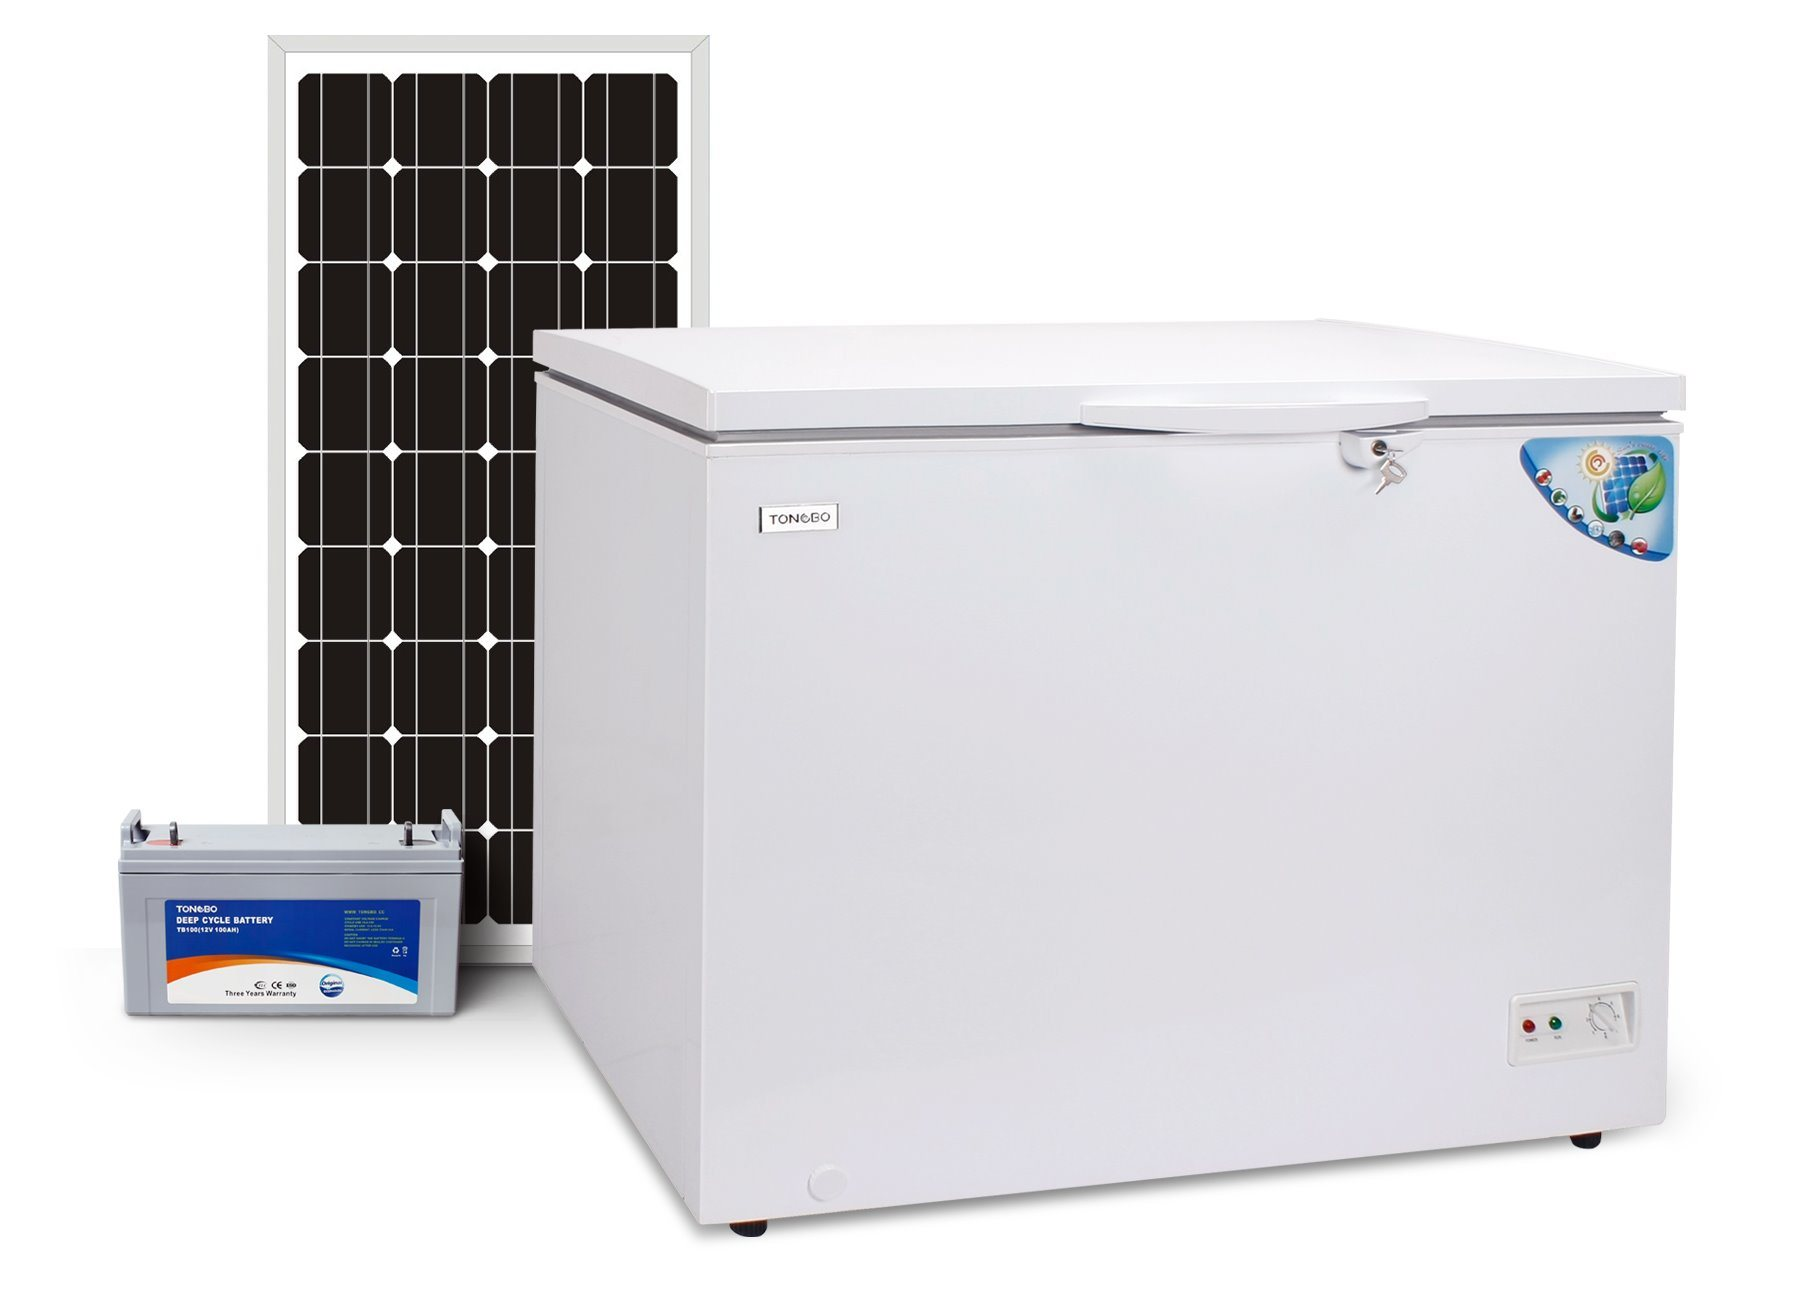 DC 12V 24V Solar Freezer Commercial Chest Freezer 230L